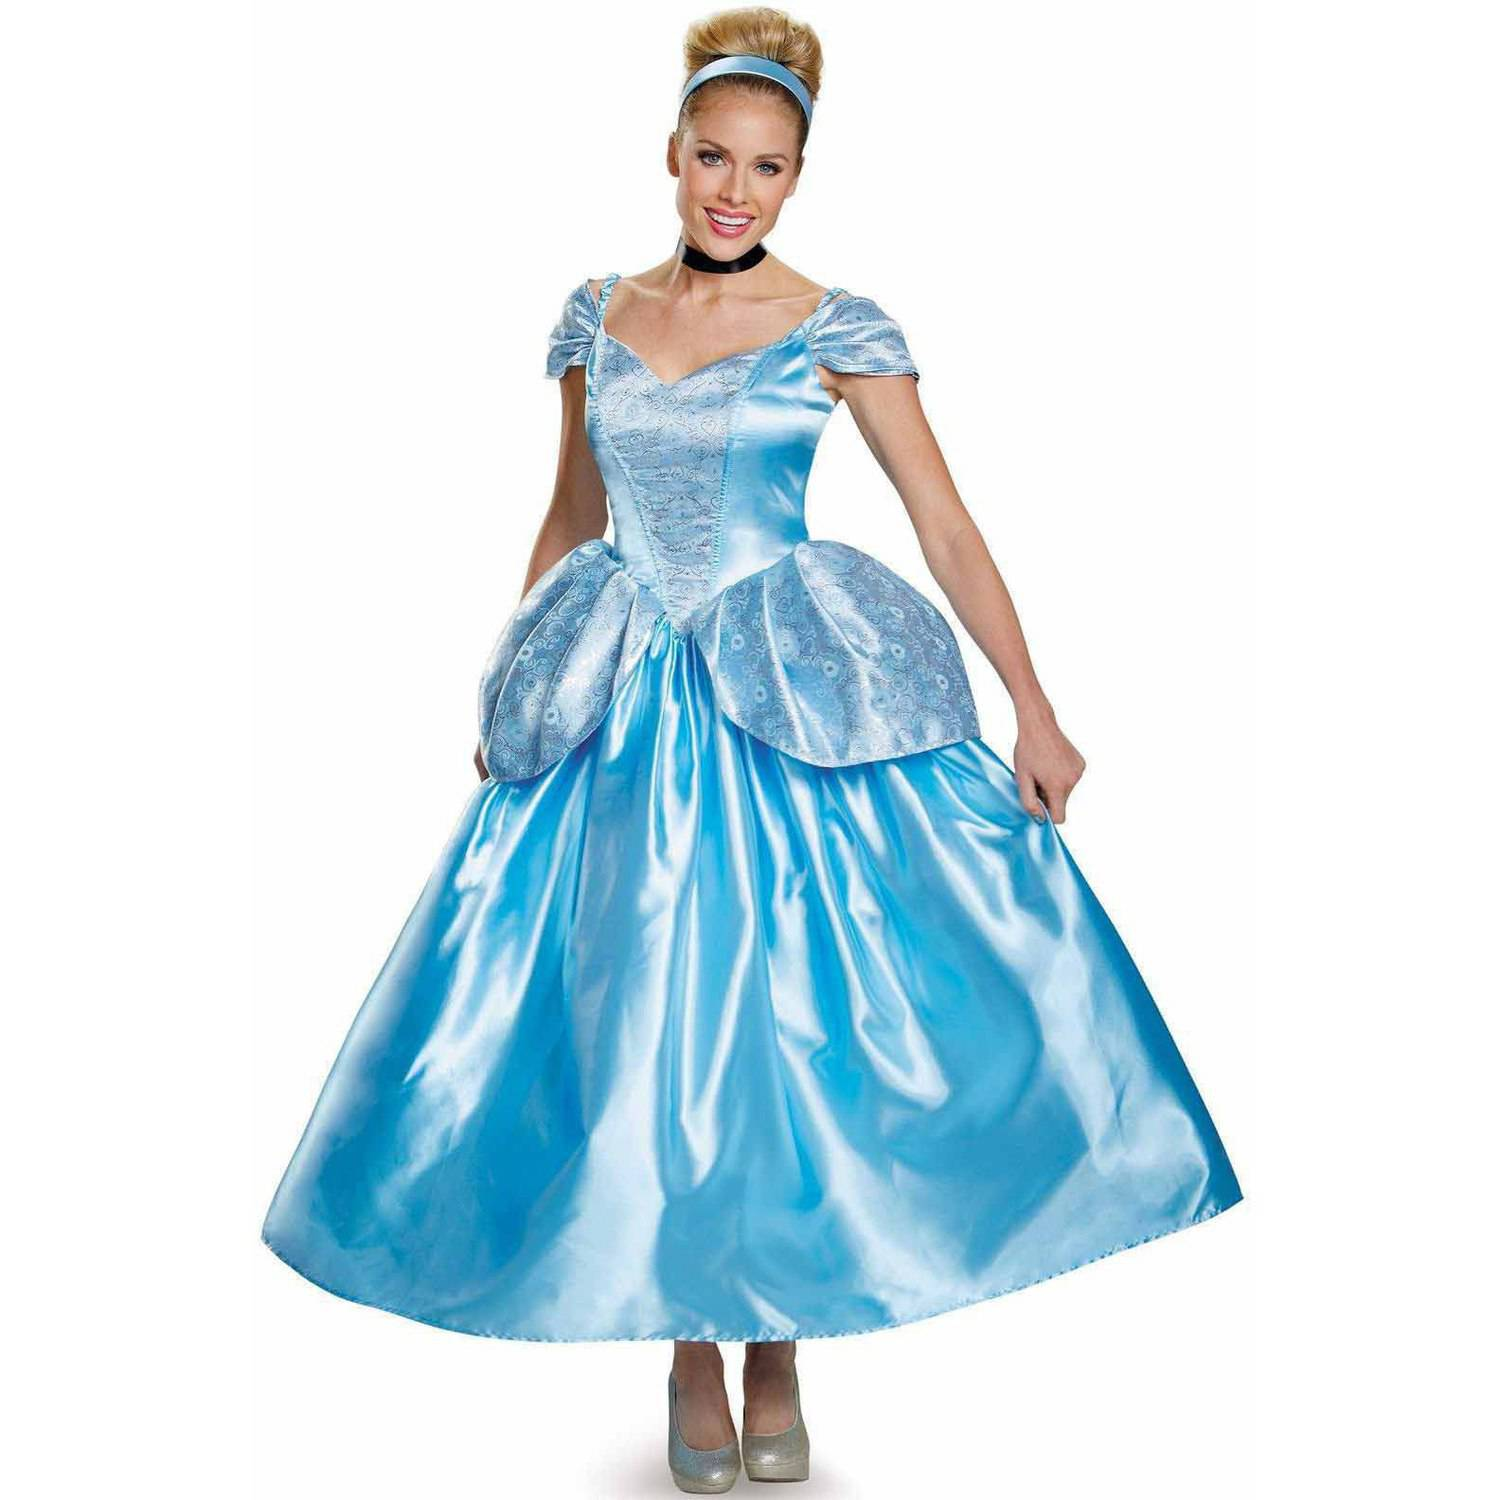 Disney Princess Cinderella Prestige Women's Adult Halloween Costume